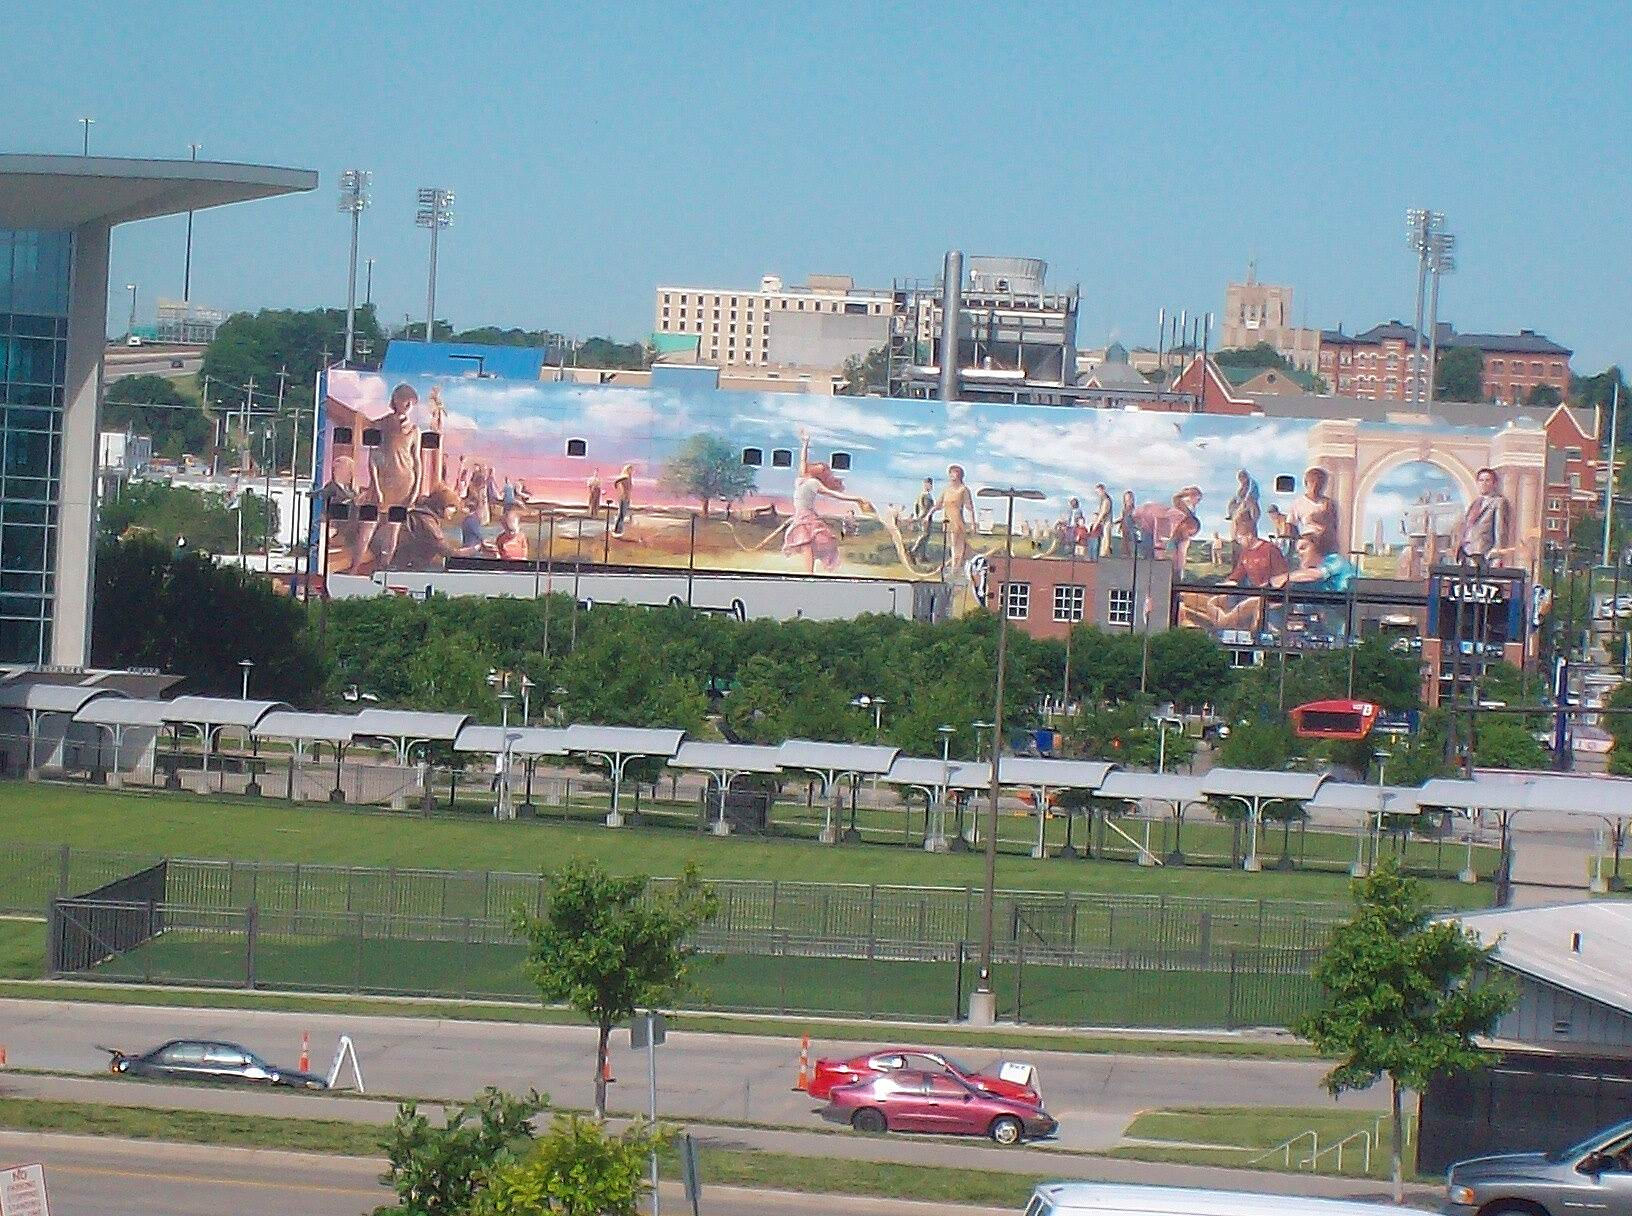 Bob Kerrey Pedestrian Bridge Stadium Mural Taken from Bridge 17 Jun 13 By Noel Keller